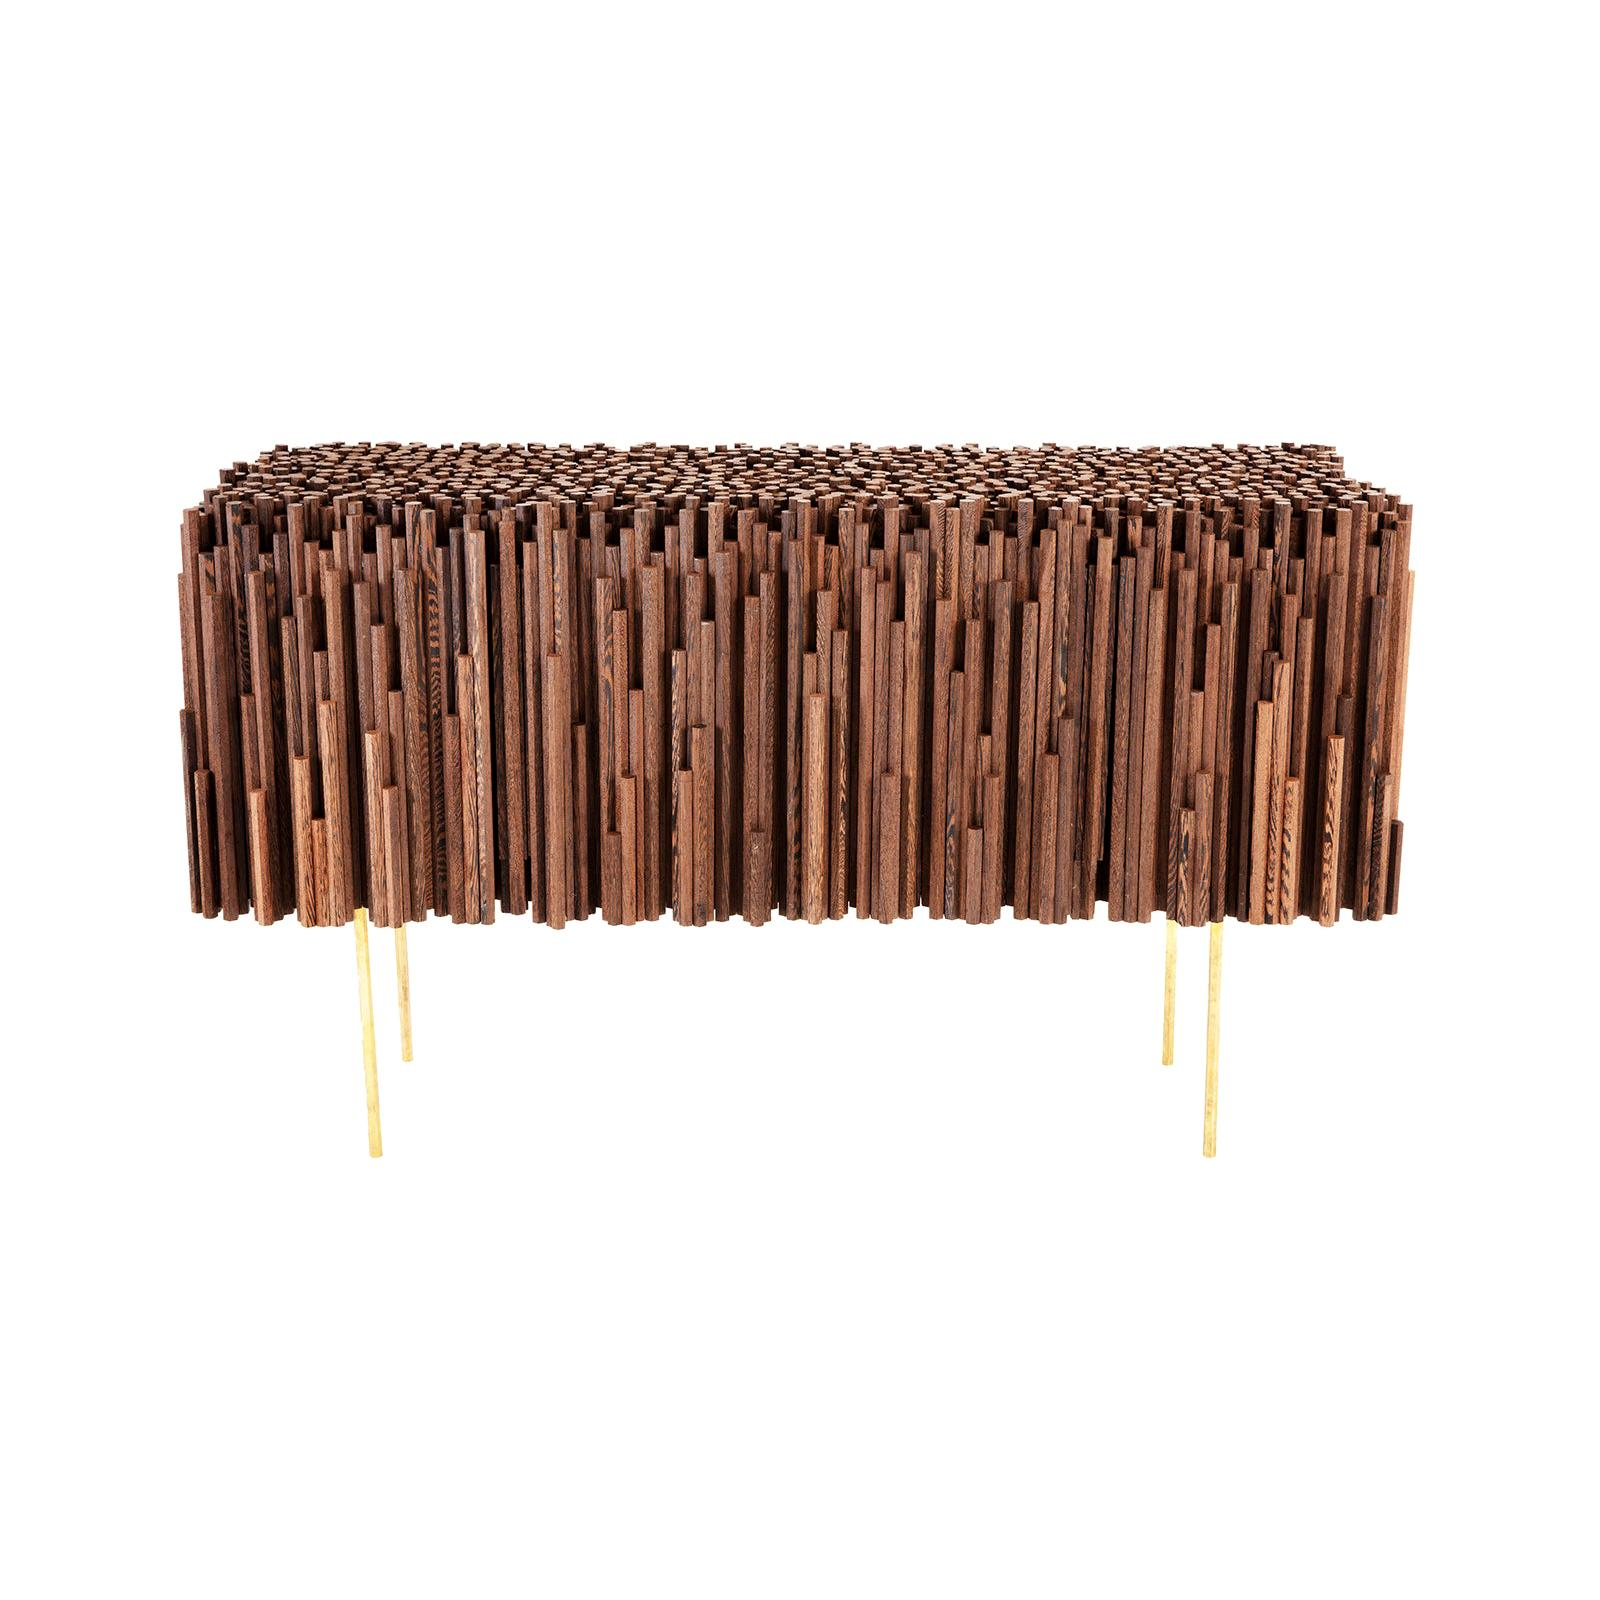 Rossana Orlandi Rochester Sideboard in Wenge by Francesco Messina for Cypraea